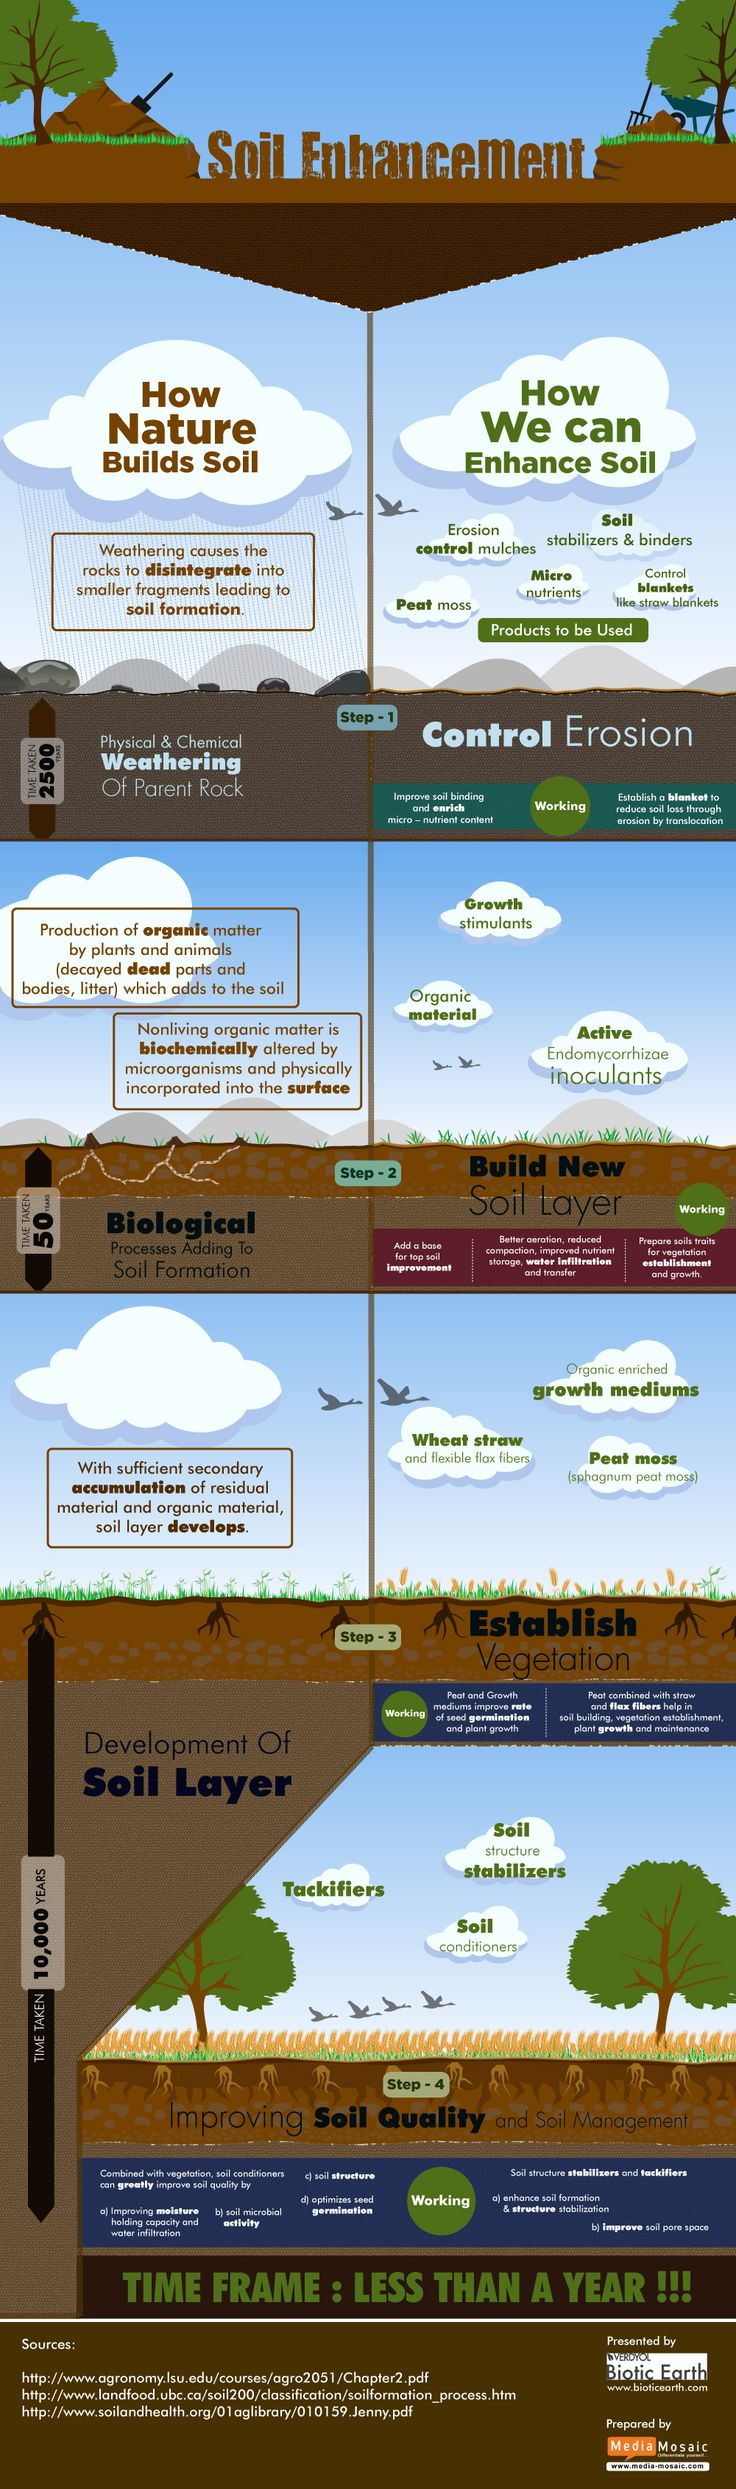 Infographic: How Nature Builds Soil & How We Can Enhance It